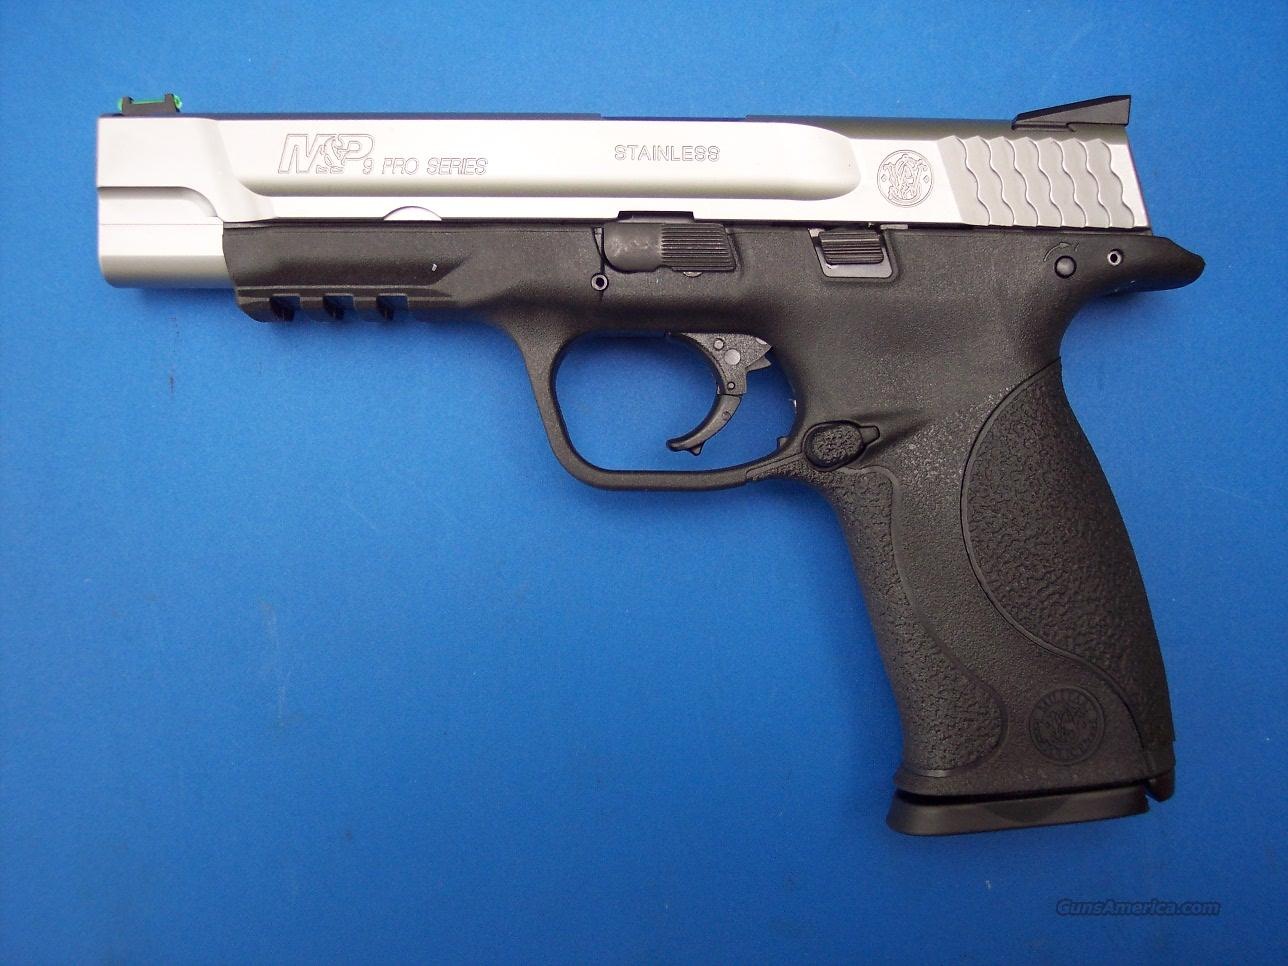 Smith & Wesson 2 Tone Stainless PRO SERIES 9mm 4 mags NEW  Guns > Pistols > Smith & Wesson Pistols - Autos > Polymer Frame